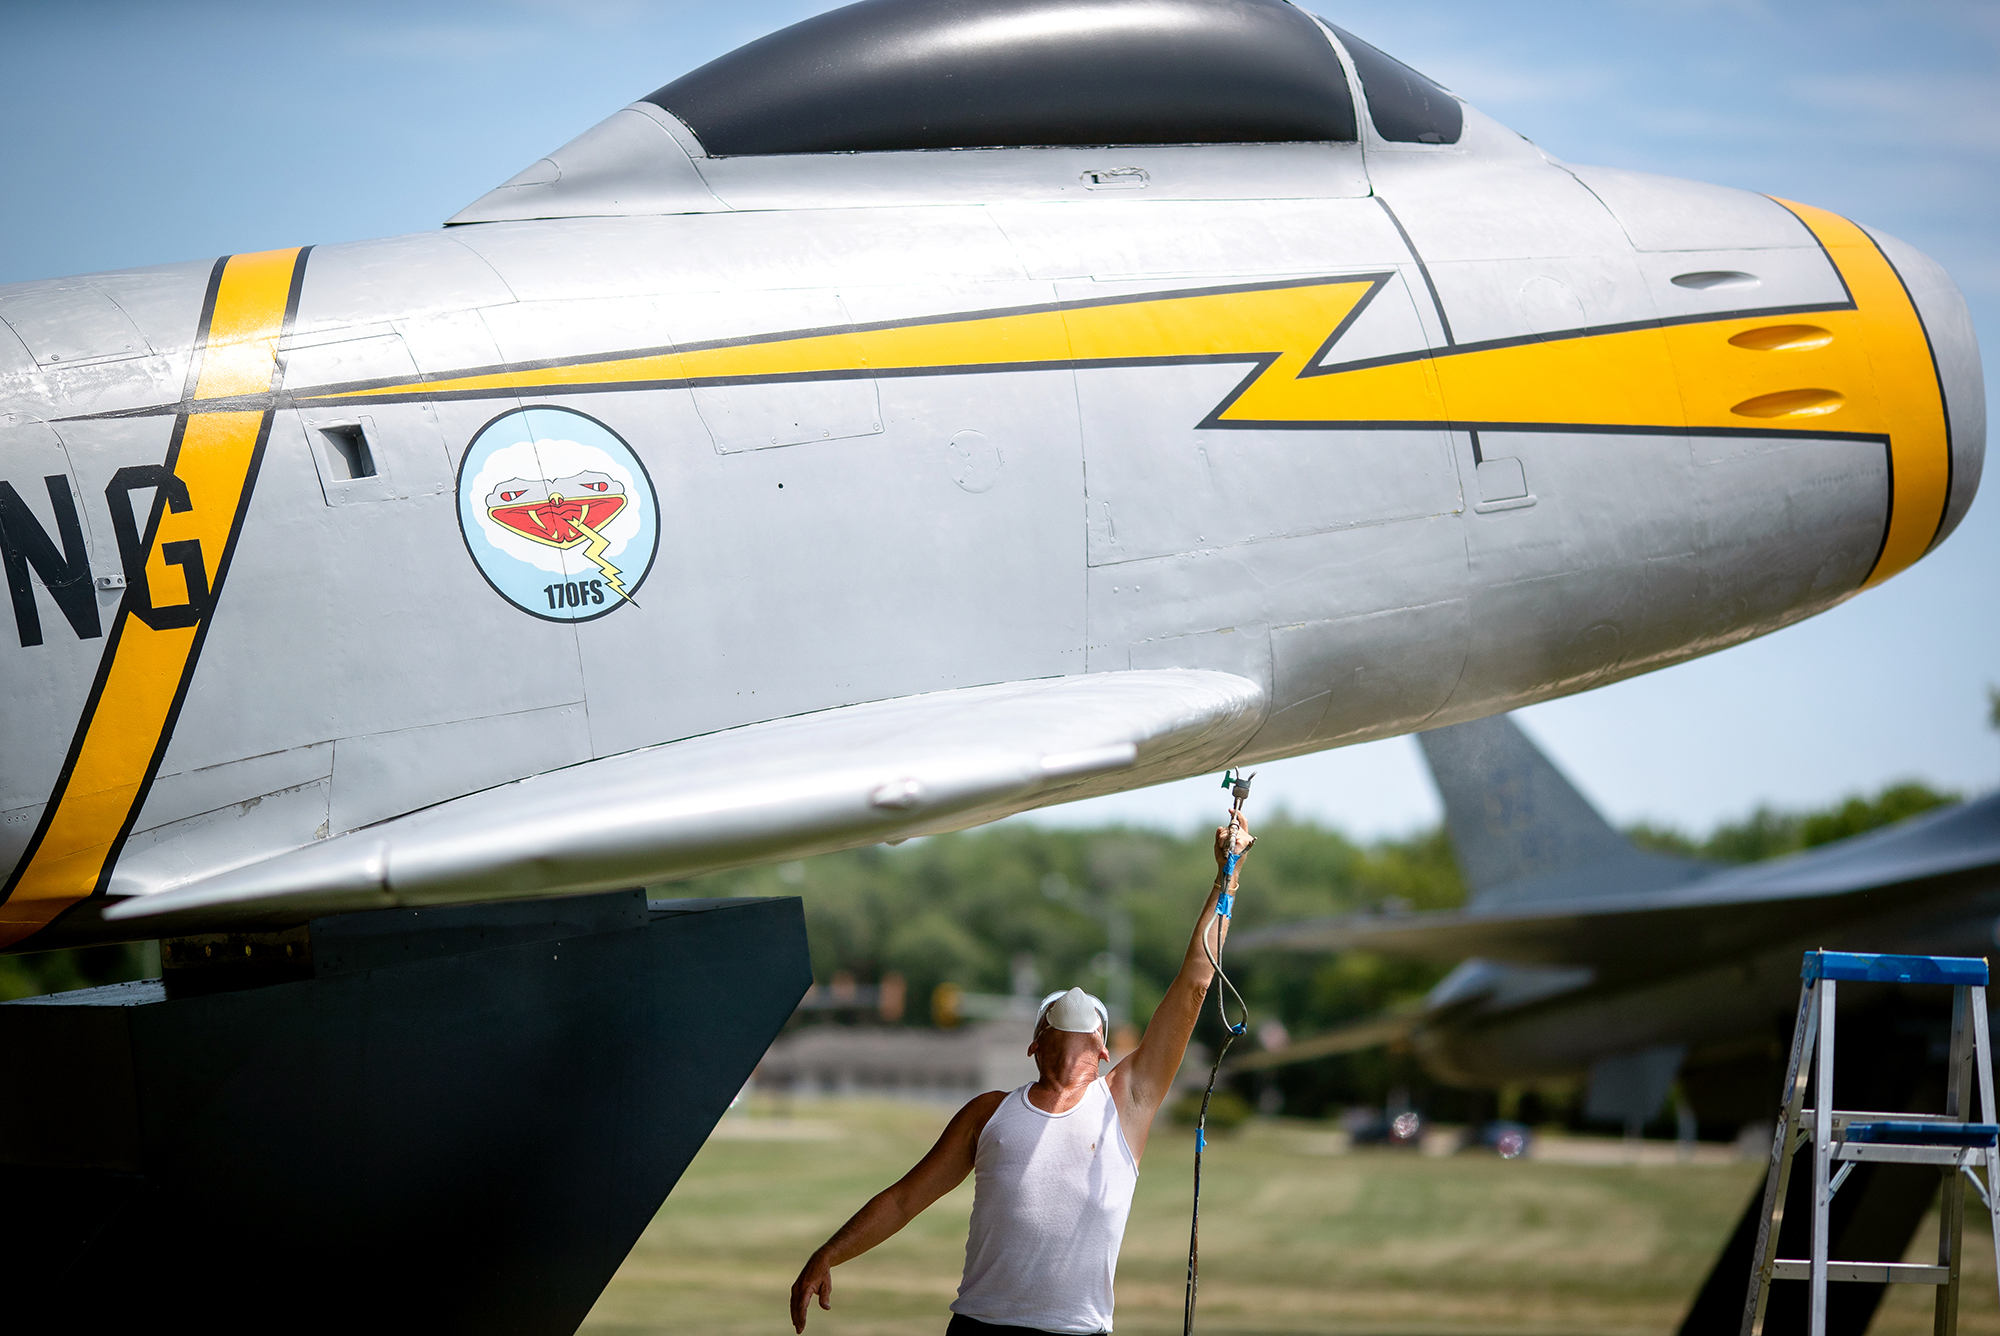 Laurence O'Neal, a painter with Energy Engineering and Controls Military Static Aircraft Painting out of Pennsylvania, applies a new layer of clear coat to the underside of the F86 Sabre on display in Heritage Park outside the Illinois Air National GuardÕs 183rd Wing at the Abraham Lincoln Capital Airport, Wednesday, July 25, 2018, in Springfield, Ill. The painting crew has been working to restore the paint of the planes on display which will take around three weeks to complete. [Justin L. Fowler/The State Journal-Register]